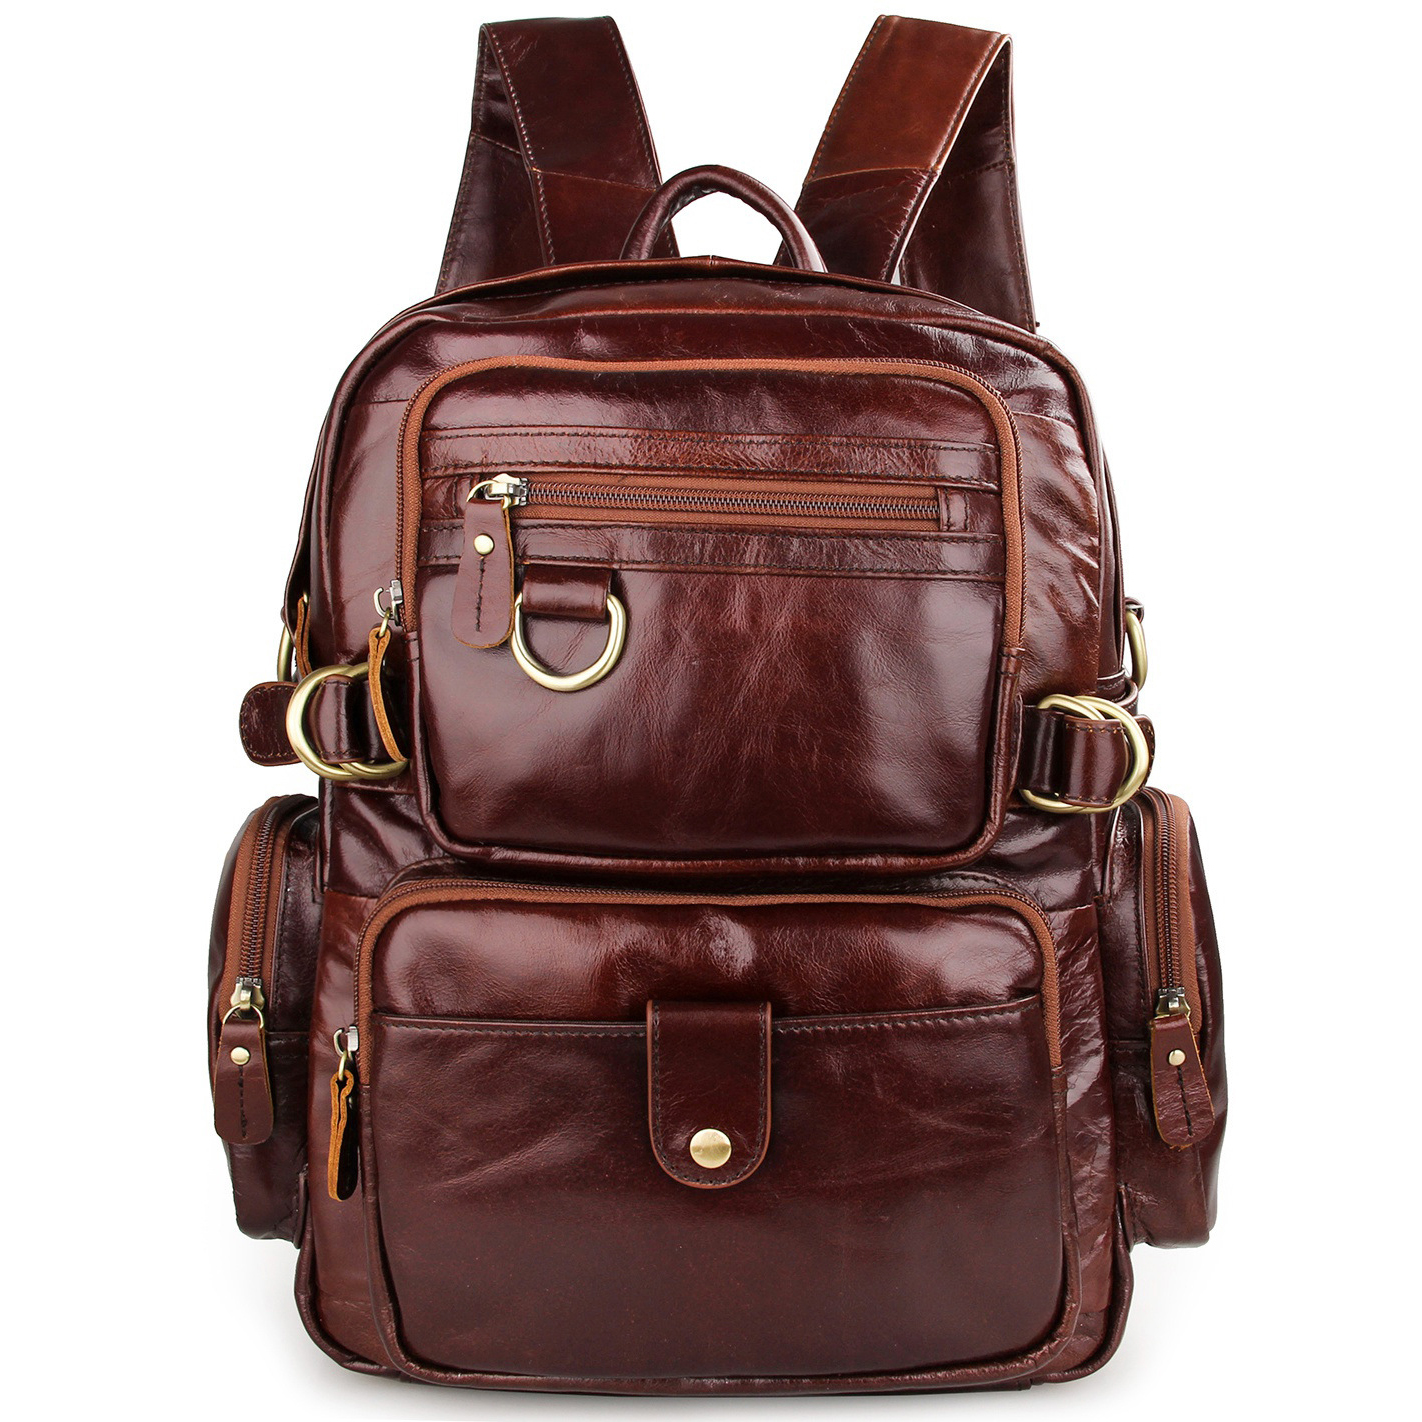 Genuine Cow Leather Vintage Backpack Men Women Travel Mochilas School Laptop Shoulder Bag Large Laptop Shopping Bag genuine cow leather vintage casual mens women backpack shoulder crossbody bags men travel backpacks for man school laptop bag